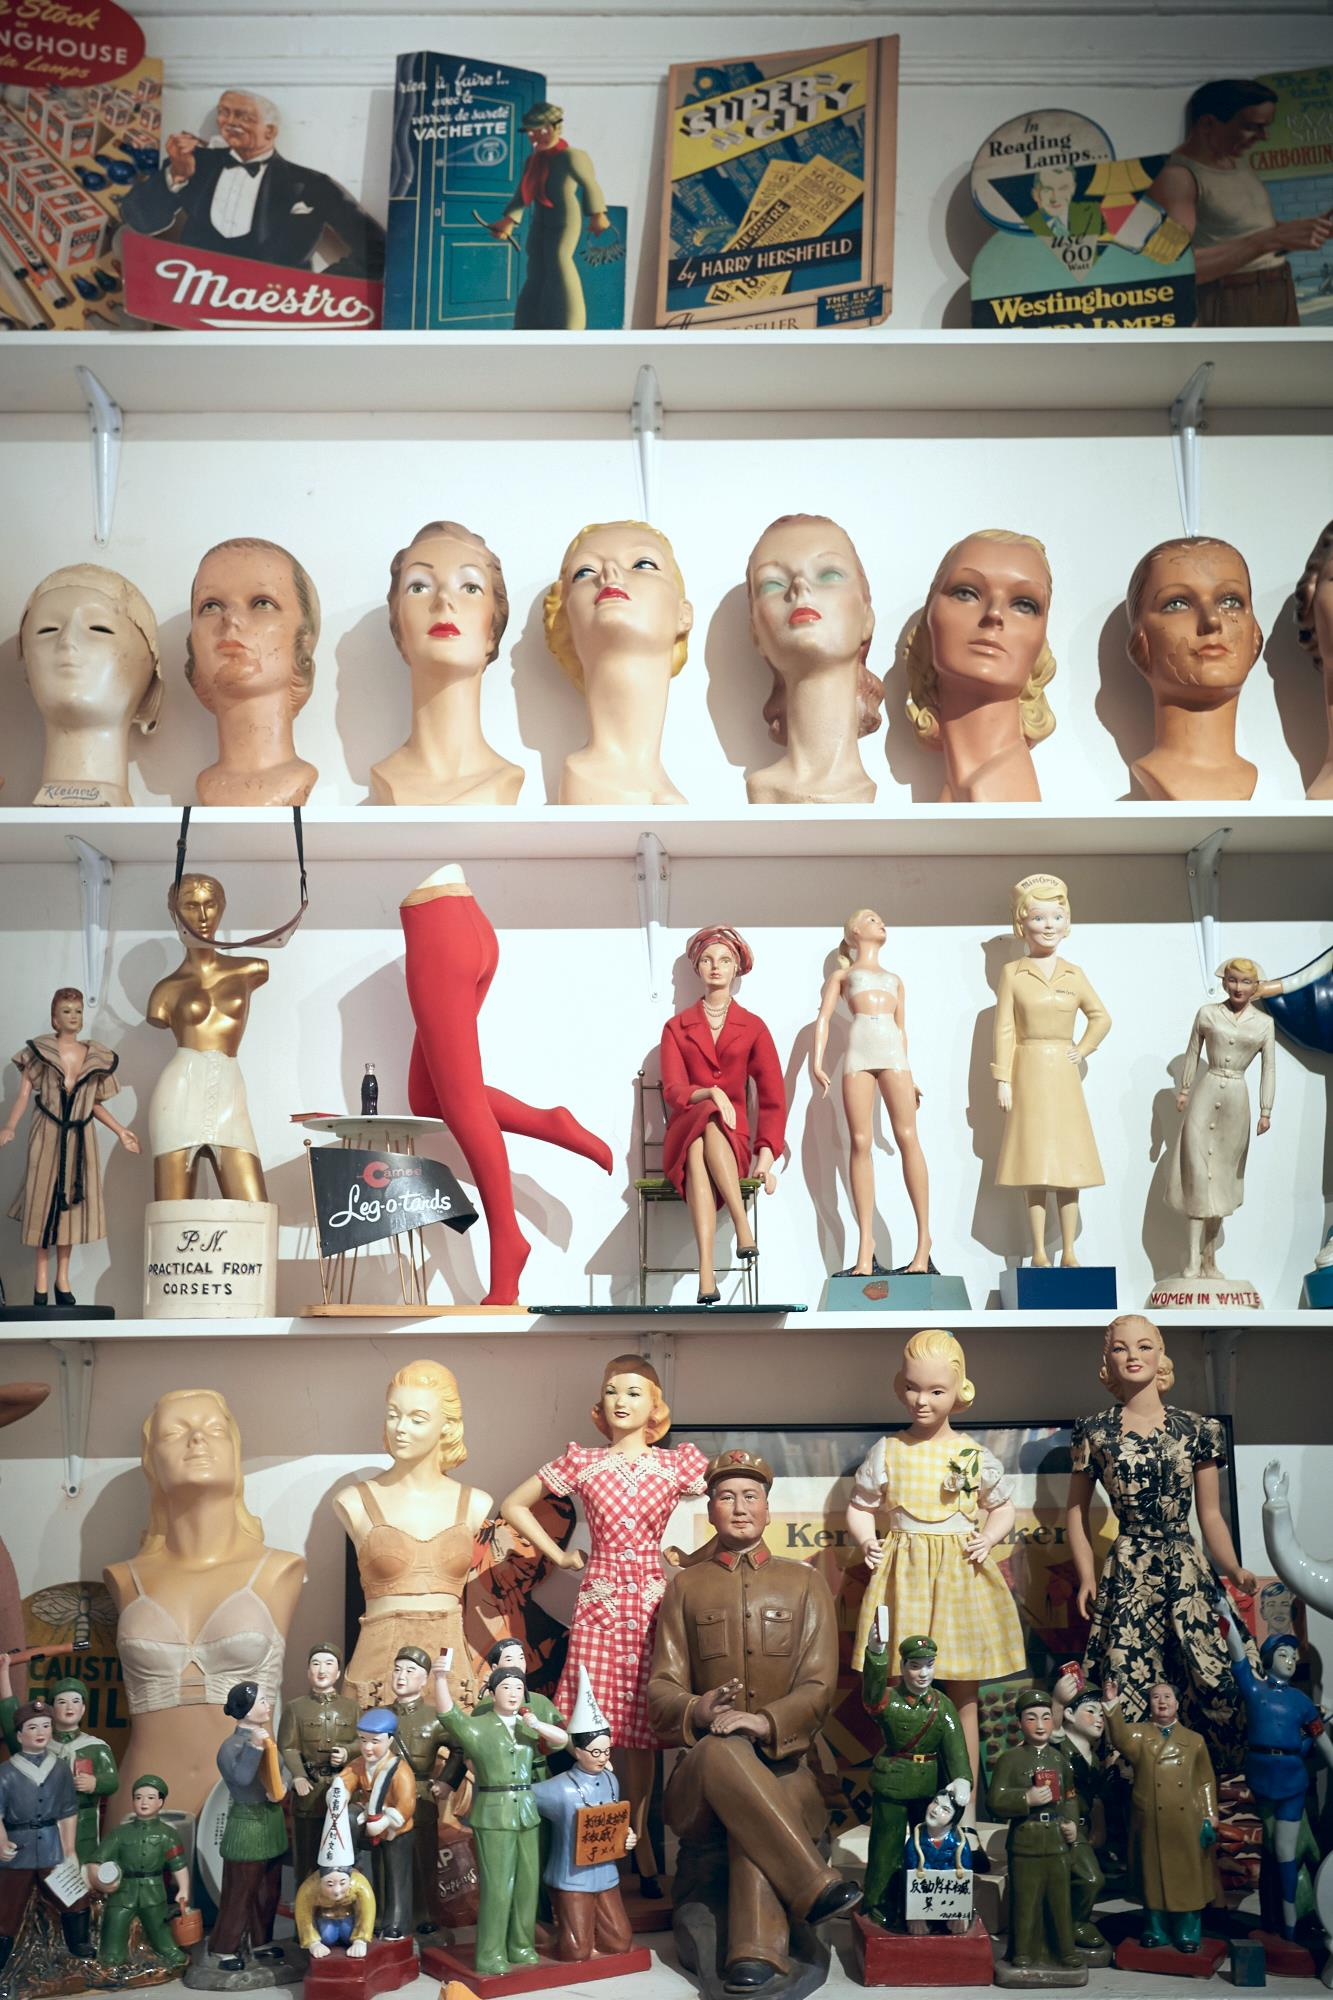 Mannequins designed to sell women's fashion and beauty products. The nurses' uniforms caught my eye.(Click on photo to enlarge)